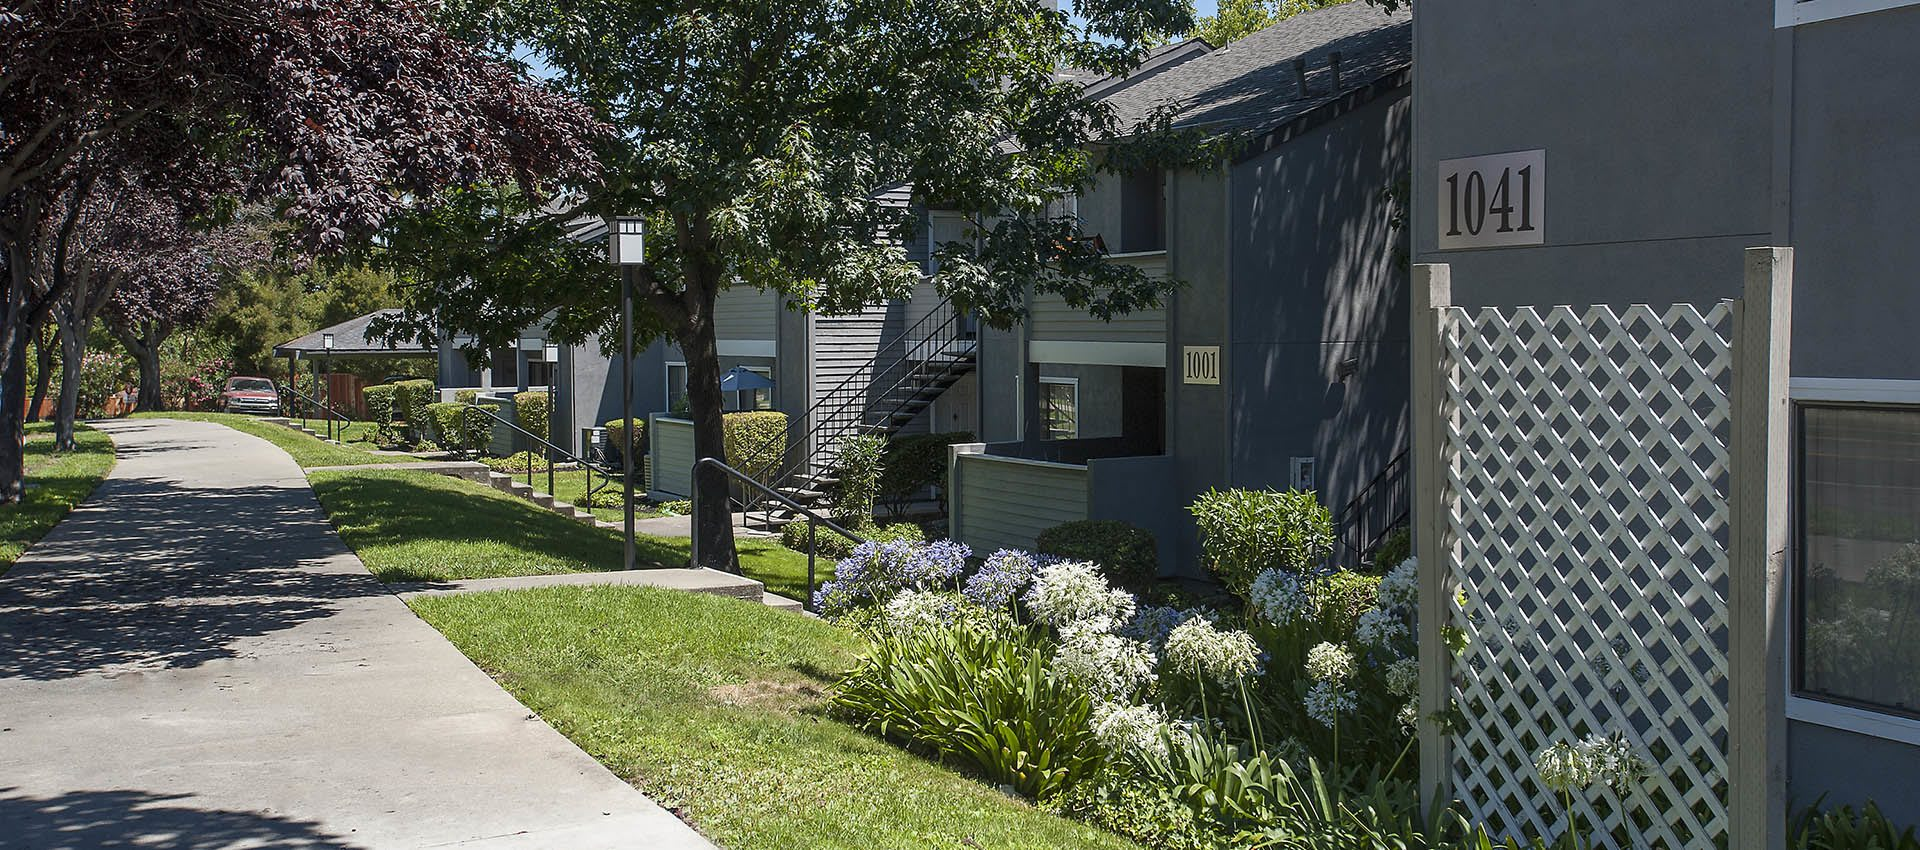 Nicely Landscaped Yards at Plum Tree Apartment Homes in Martinez, CA